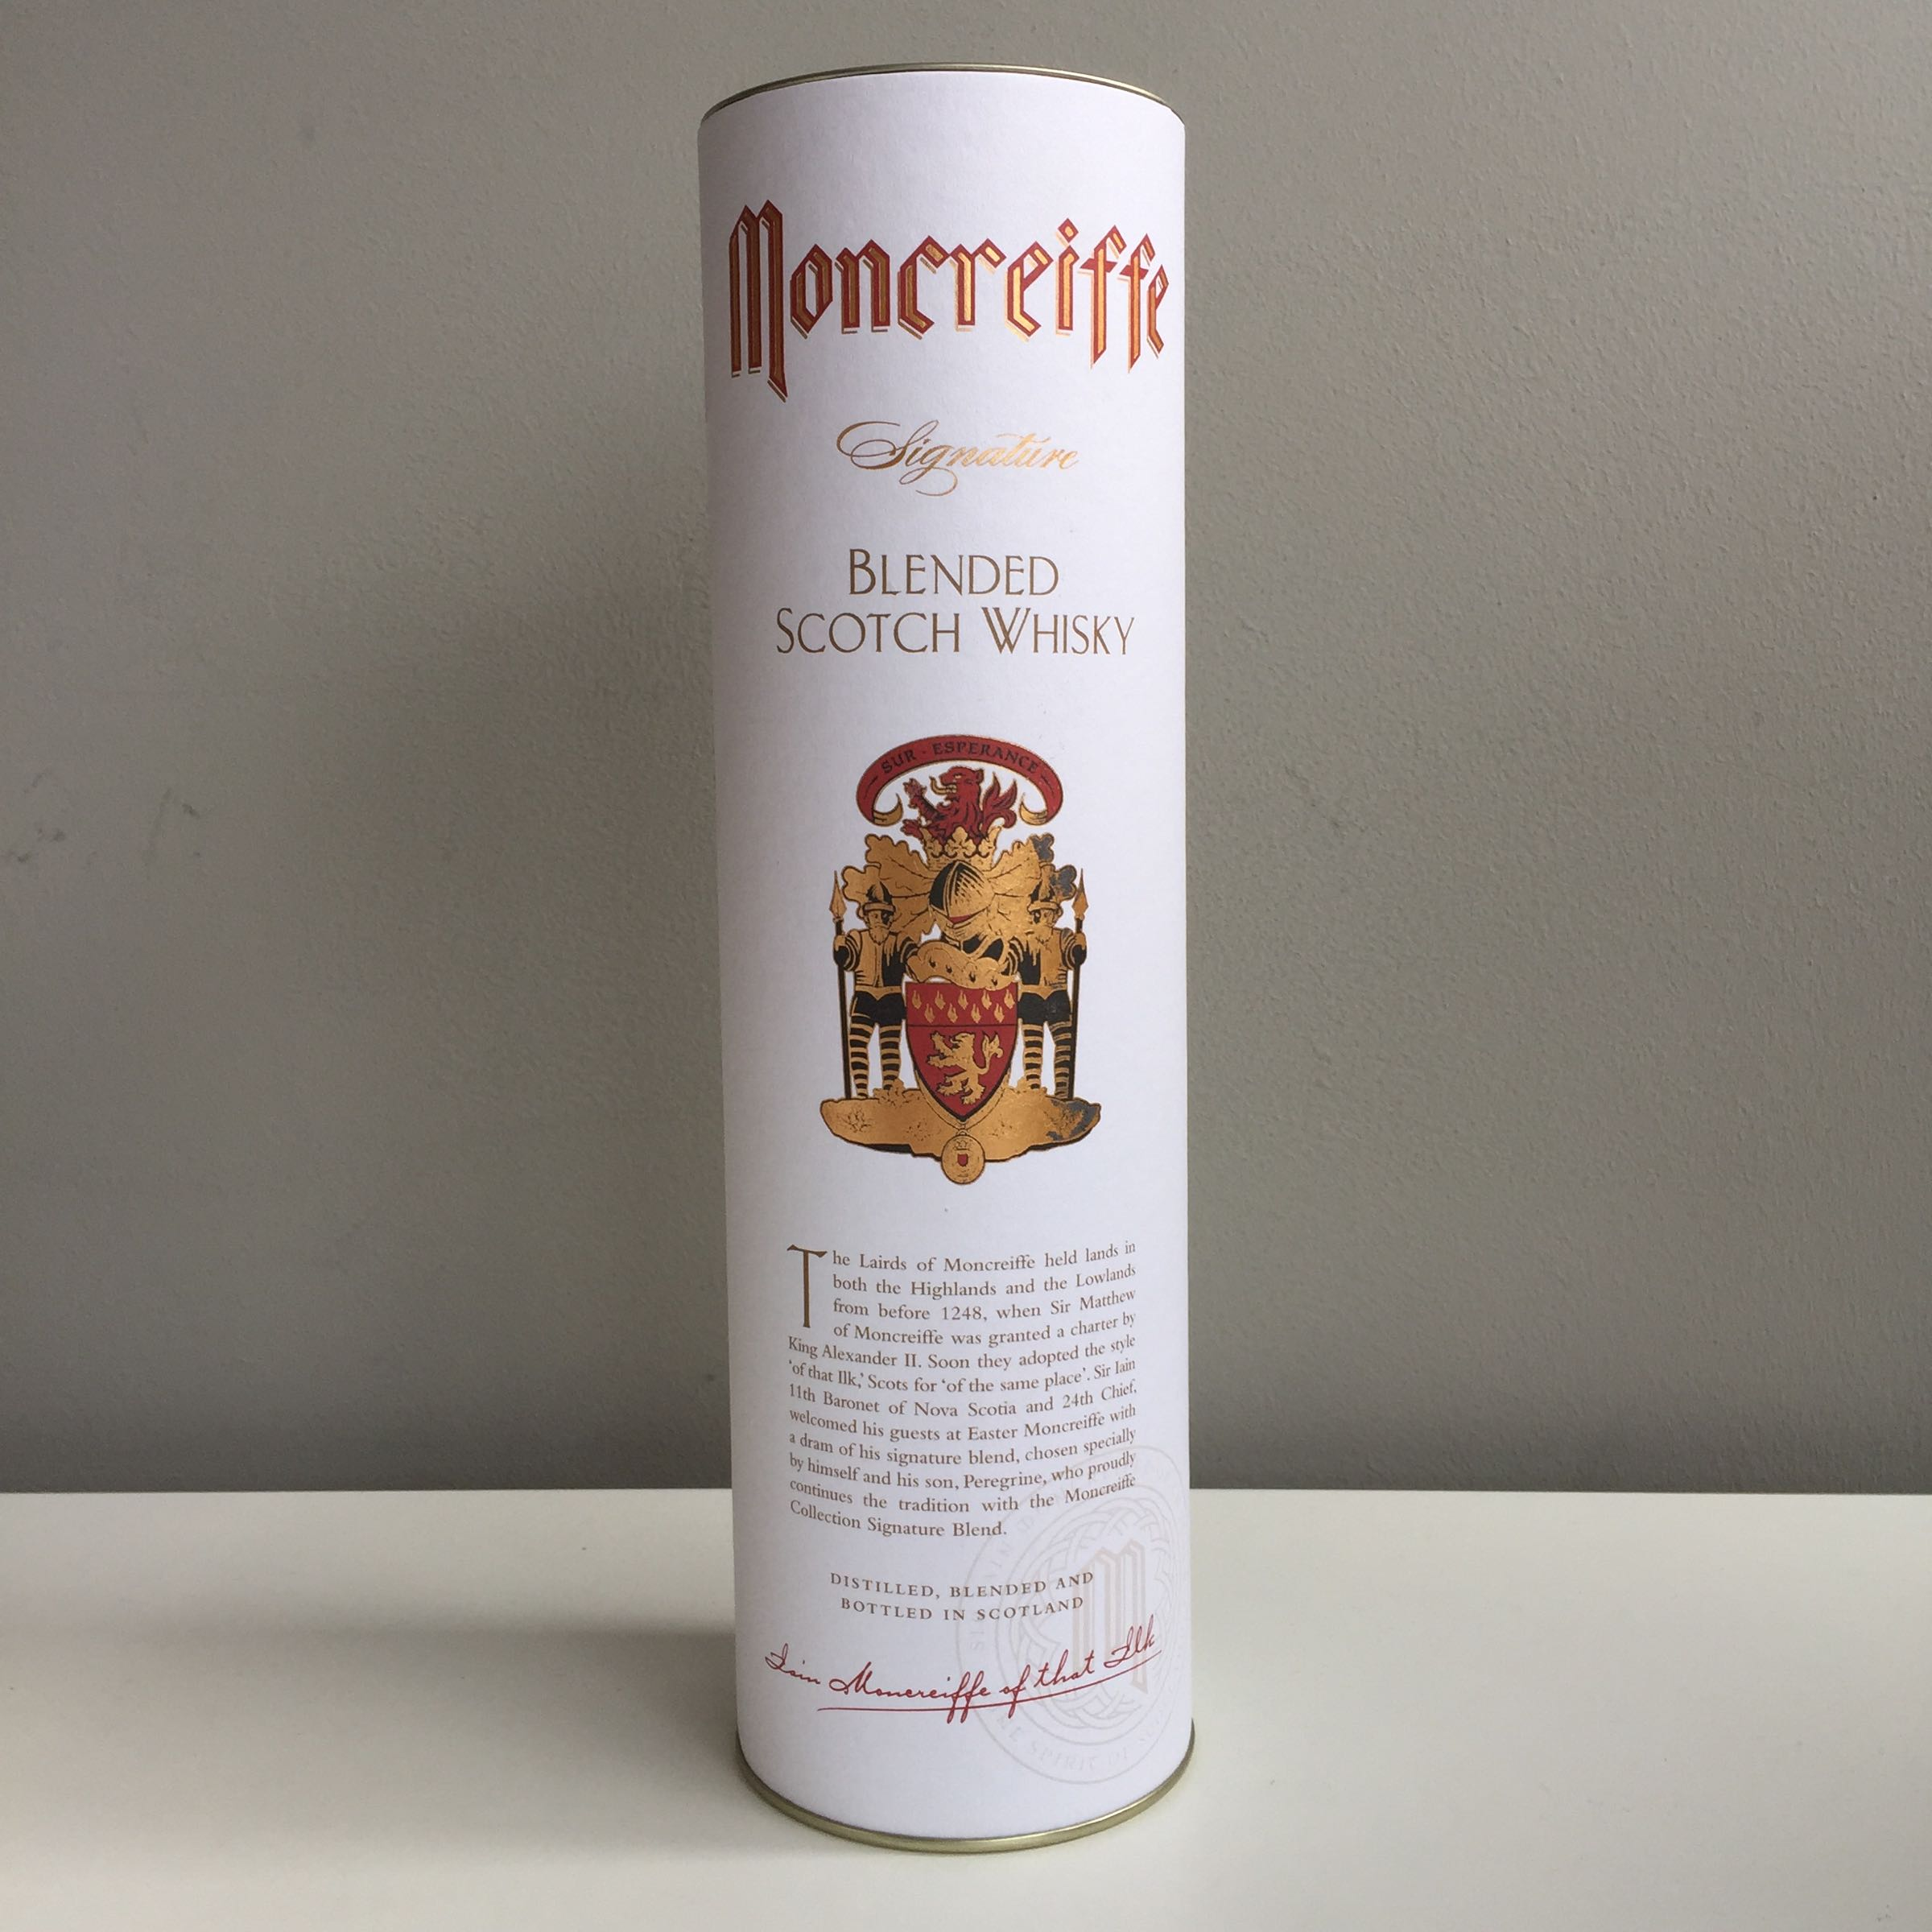 Moncreiffe Signature Blended Scotch Whisky 70cl 46% ABV